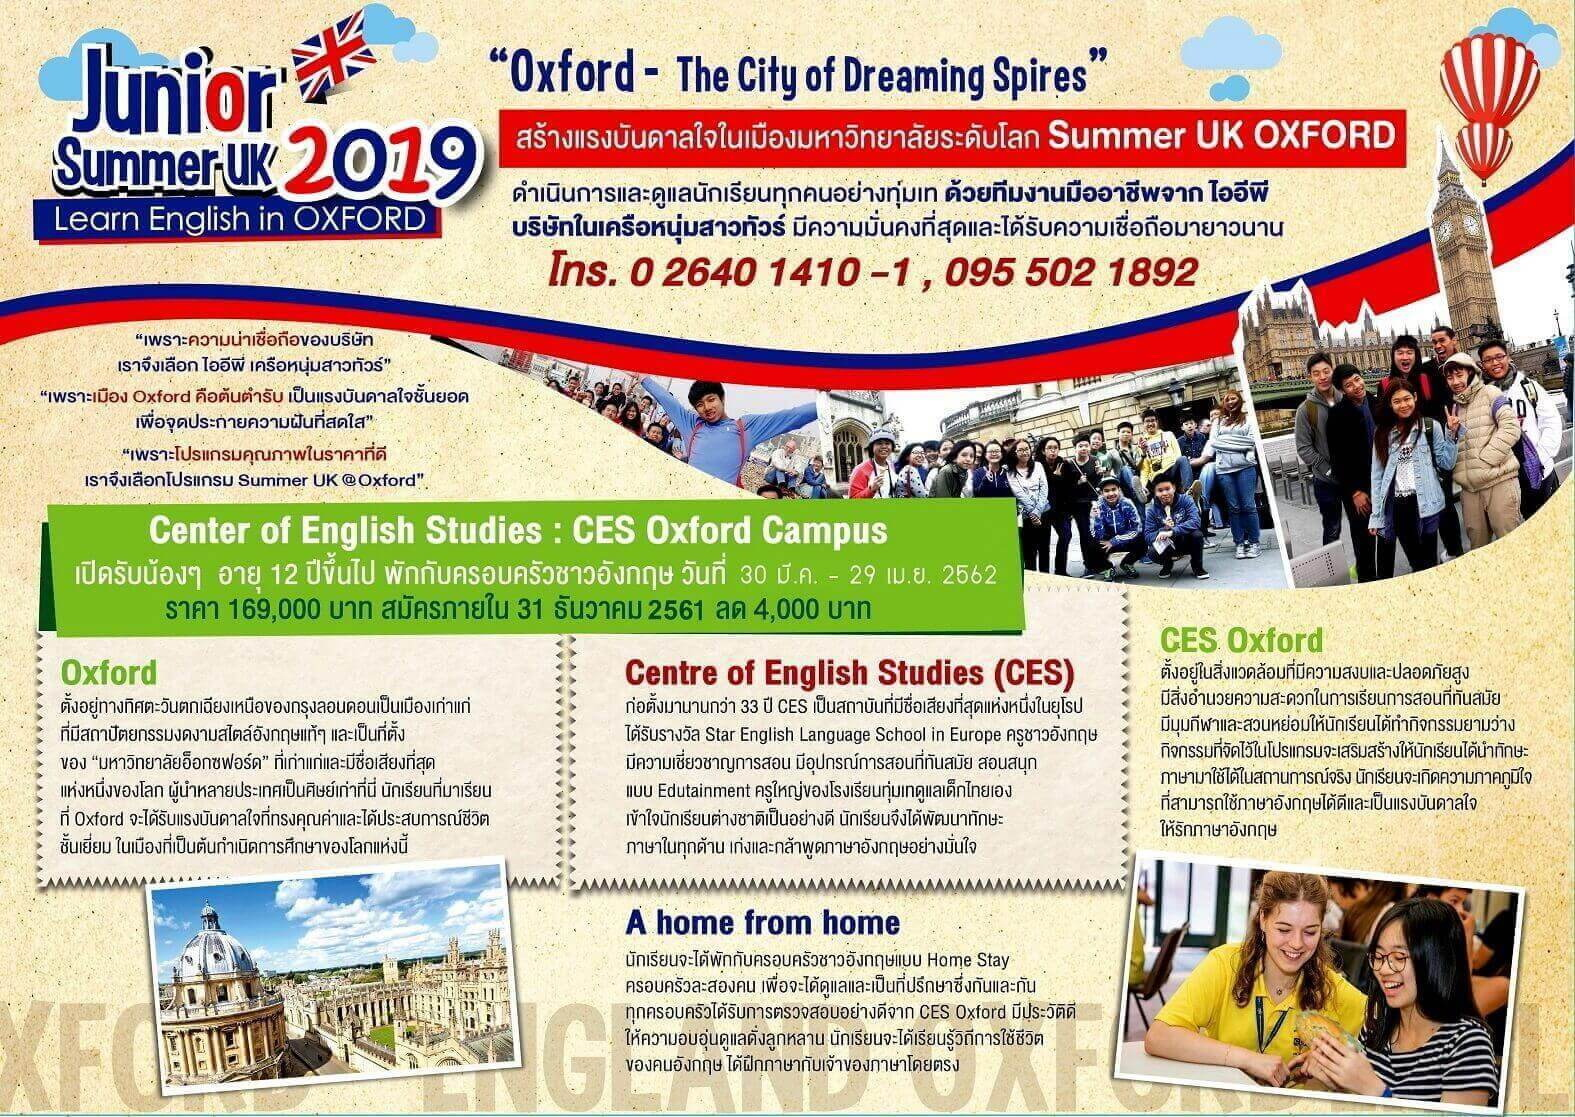 เรียนซัมเมอร์ต่างประเทศ Centre of English Studies-Program of CES Oxford English Summer Camp April 2019 in UK